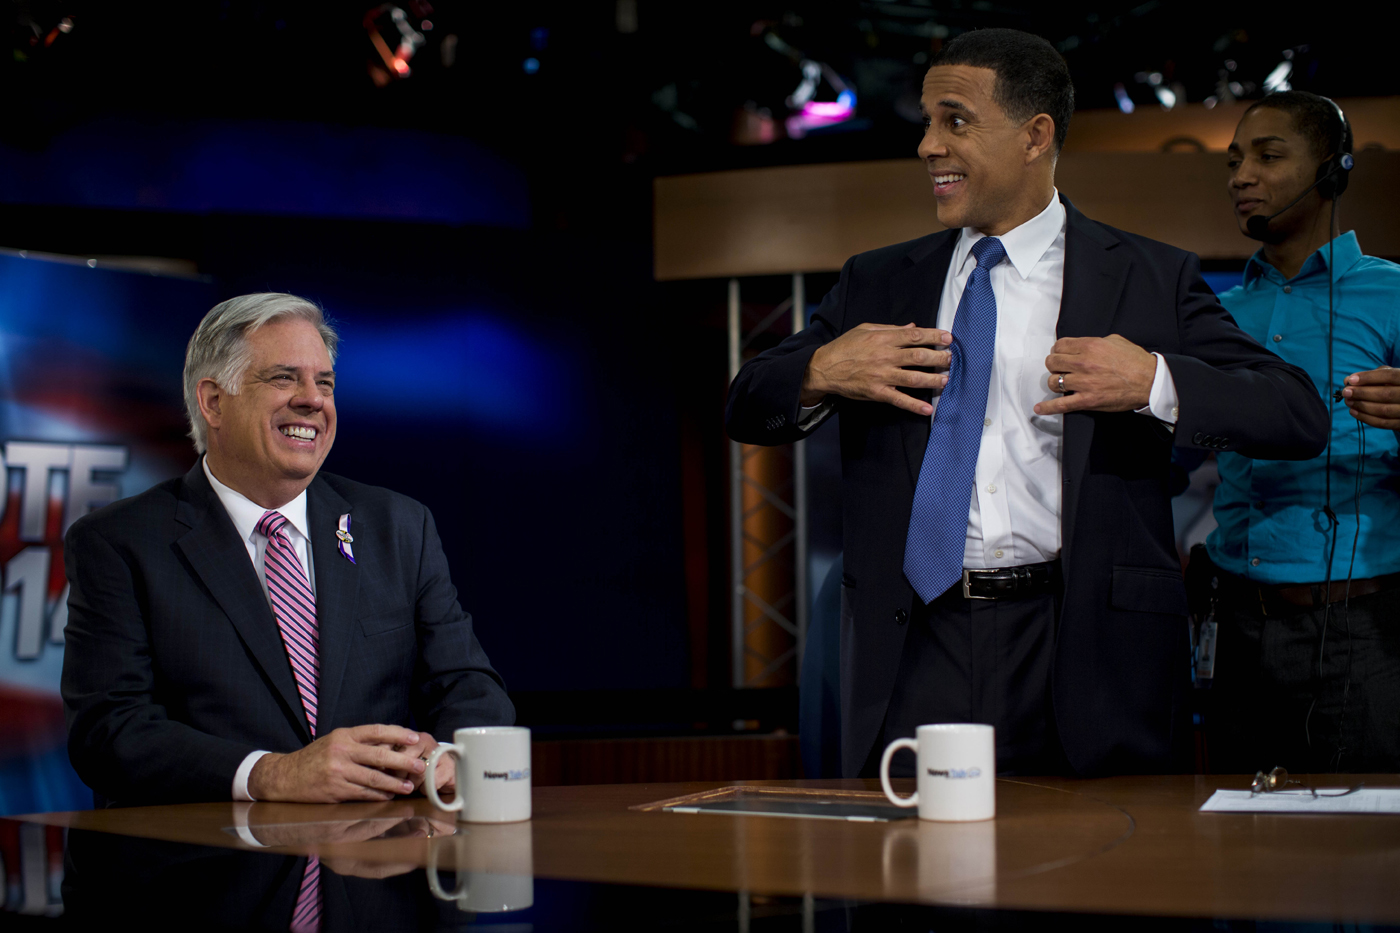 On the stump: Anthony Brown and Larry Hogan's race for Maryland governor